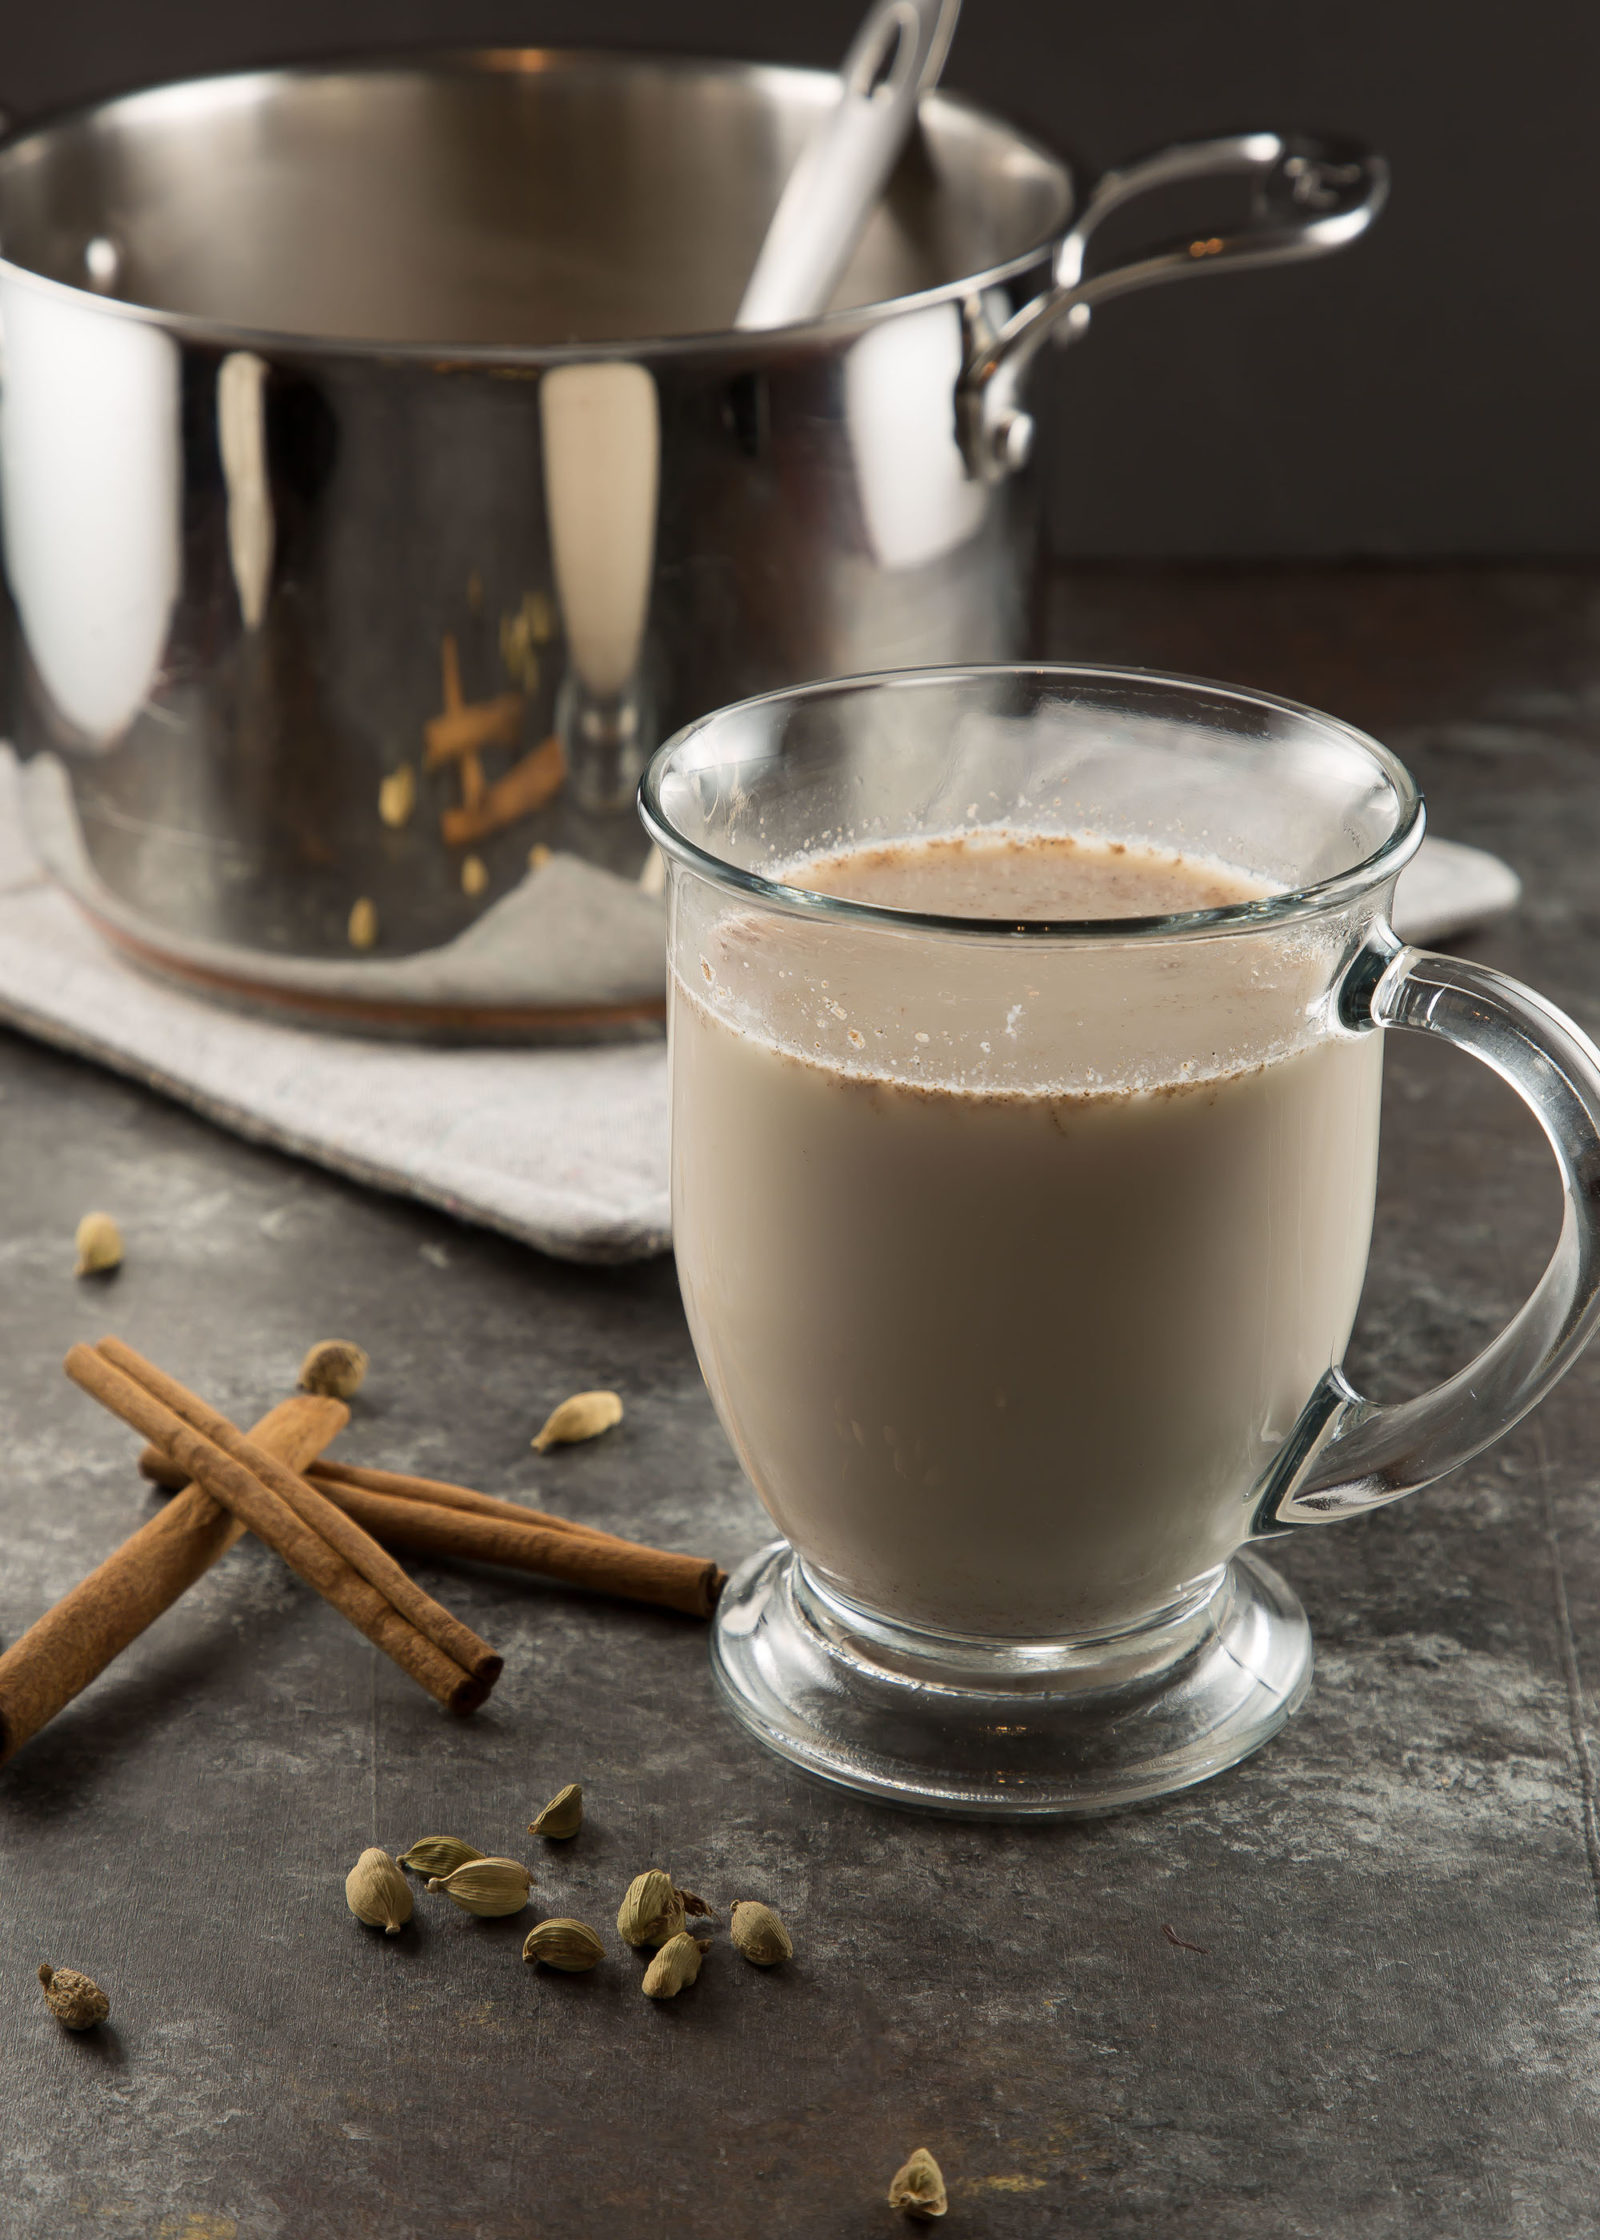 Spiced Amond Milk in a mug